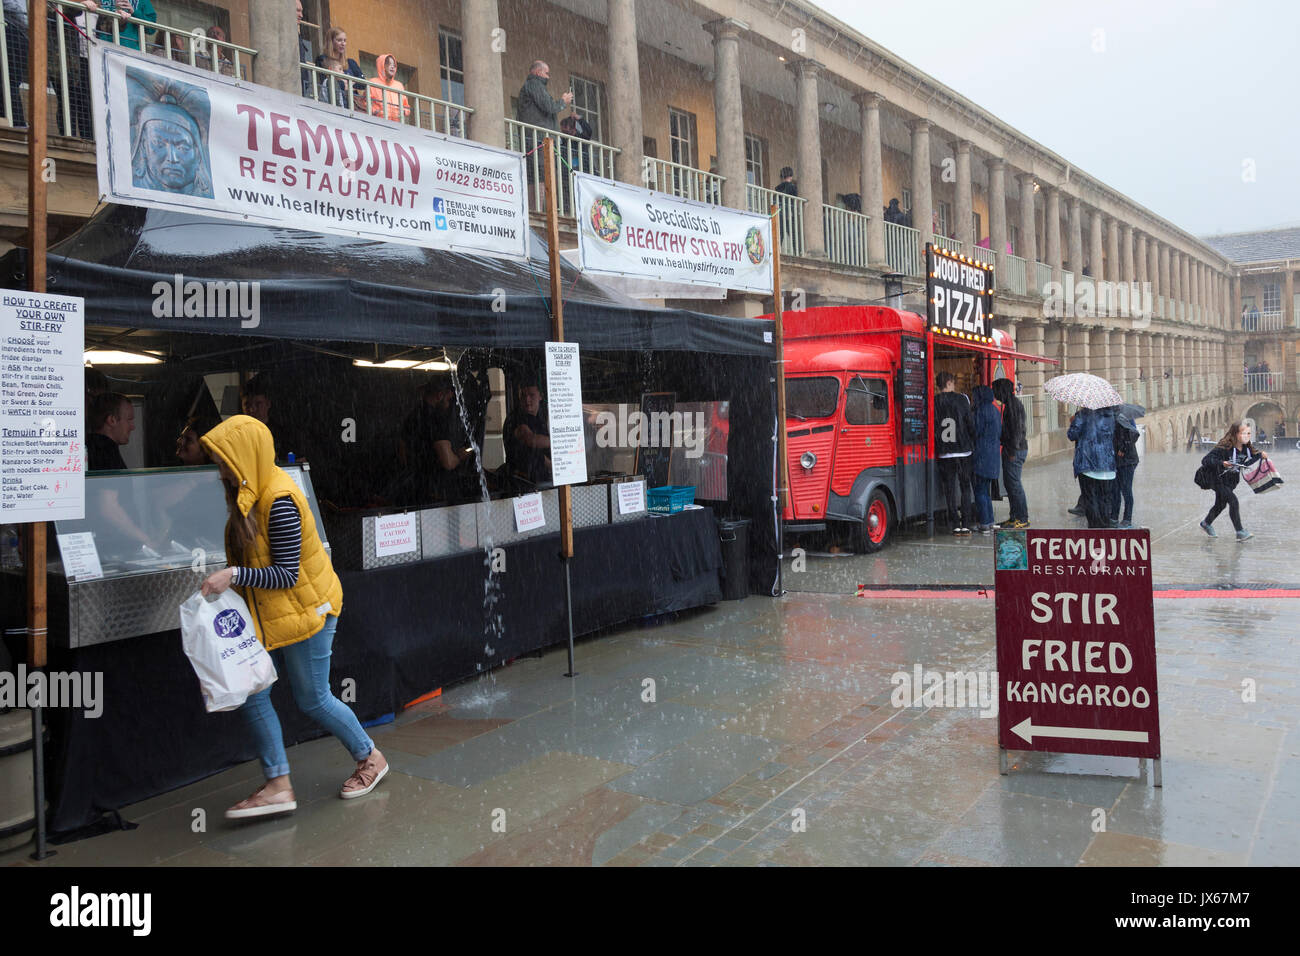 Food stall at the Piece Hall in the rain, Halifax, West Yorkshire - Stock Image